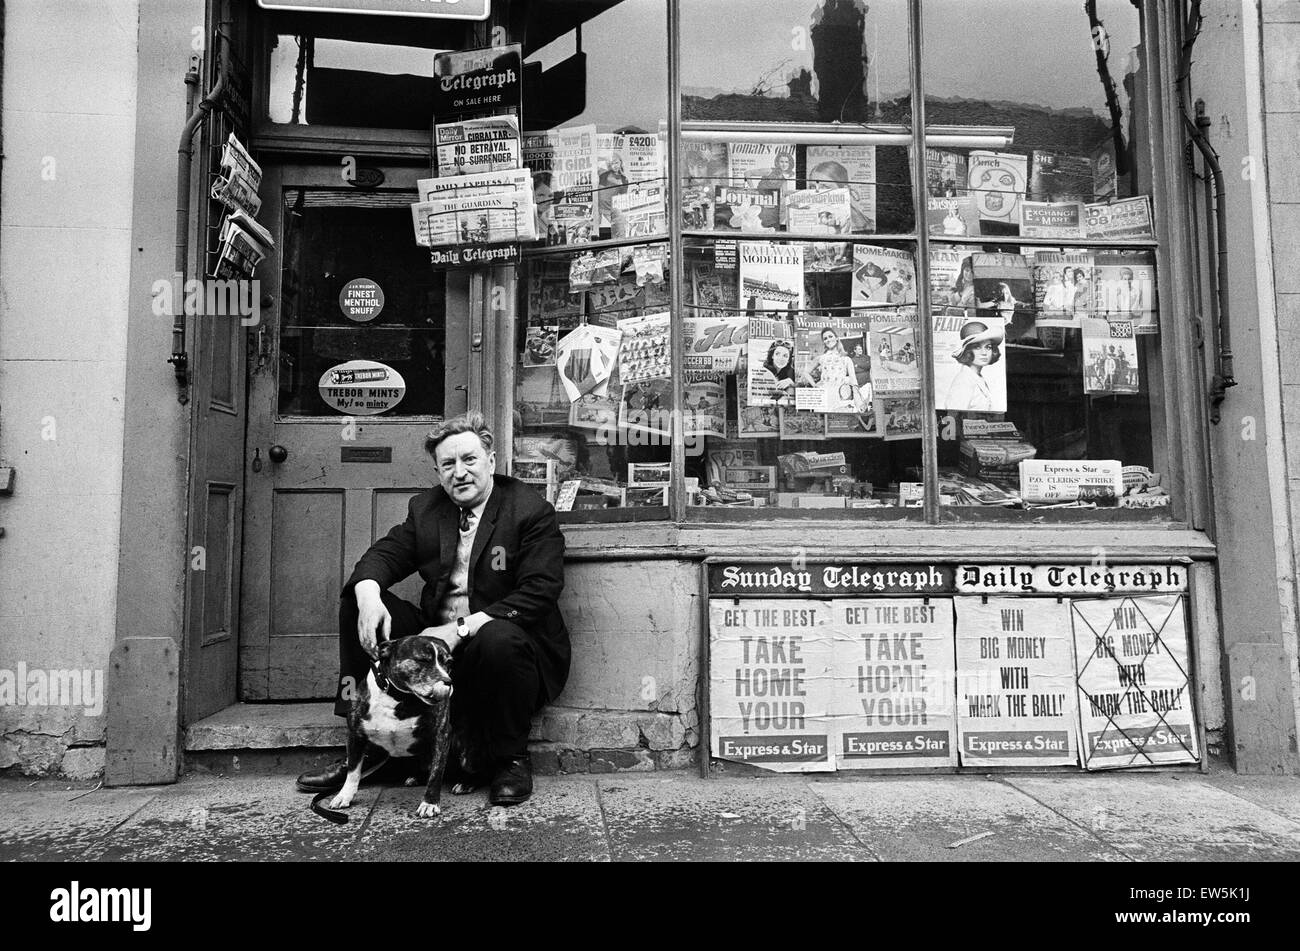 Donald Bytheway, Newsagent, Wolverhampton Street, Dudley, The Black Country, West Midlands, England. 25th May 1968. - Stock Image